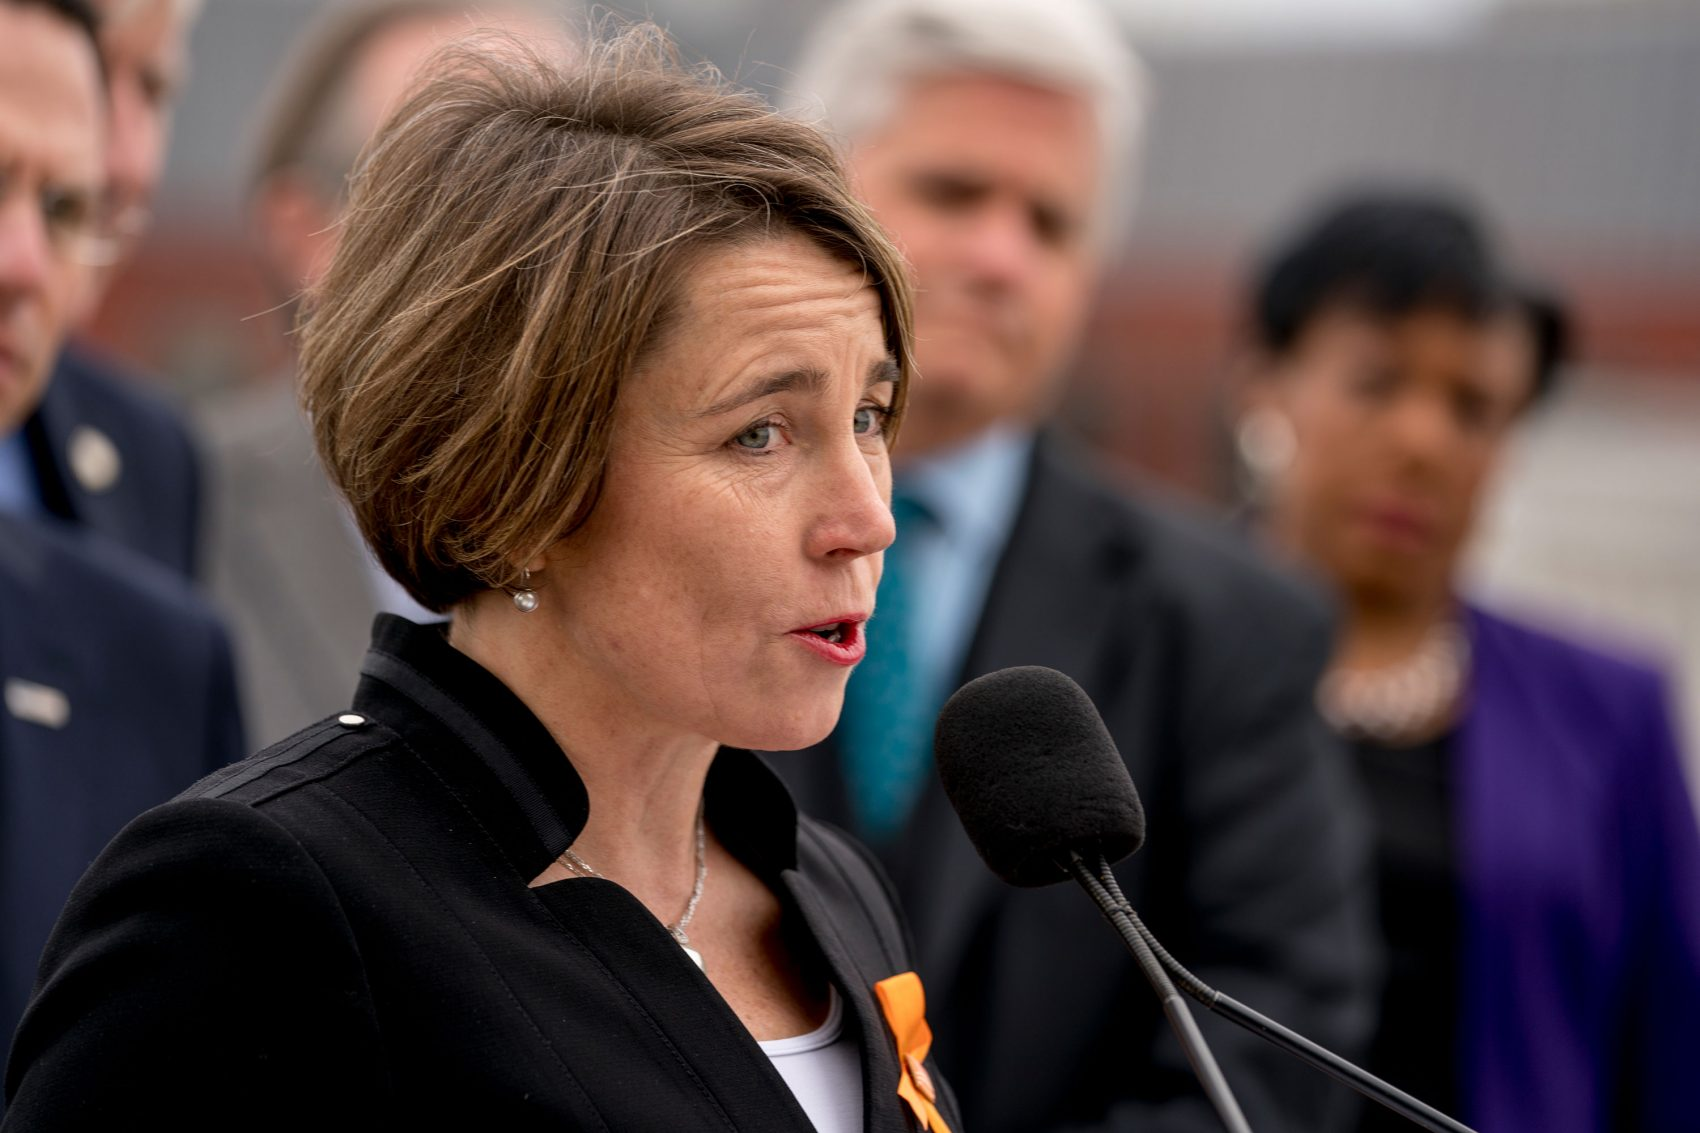 Massachusetts Attorney General Maura Healey speaks at a news conference near the White House on Feb. 26. (Andrew Harnik/AP)